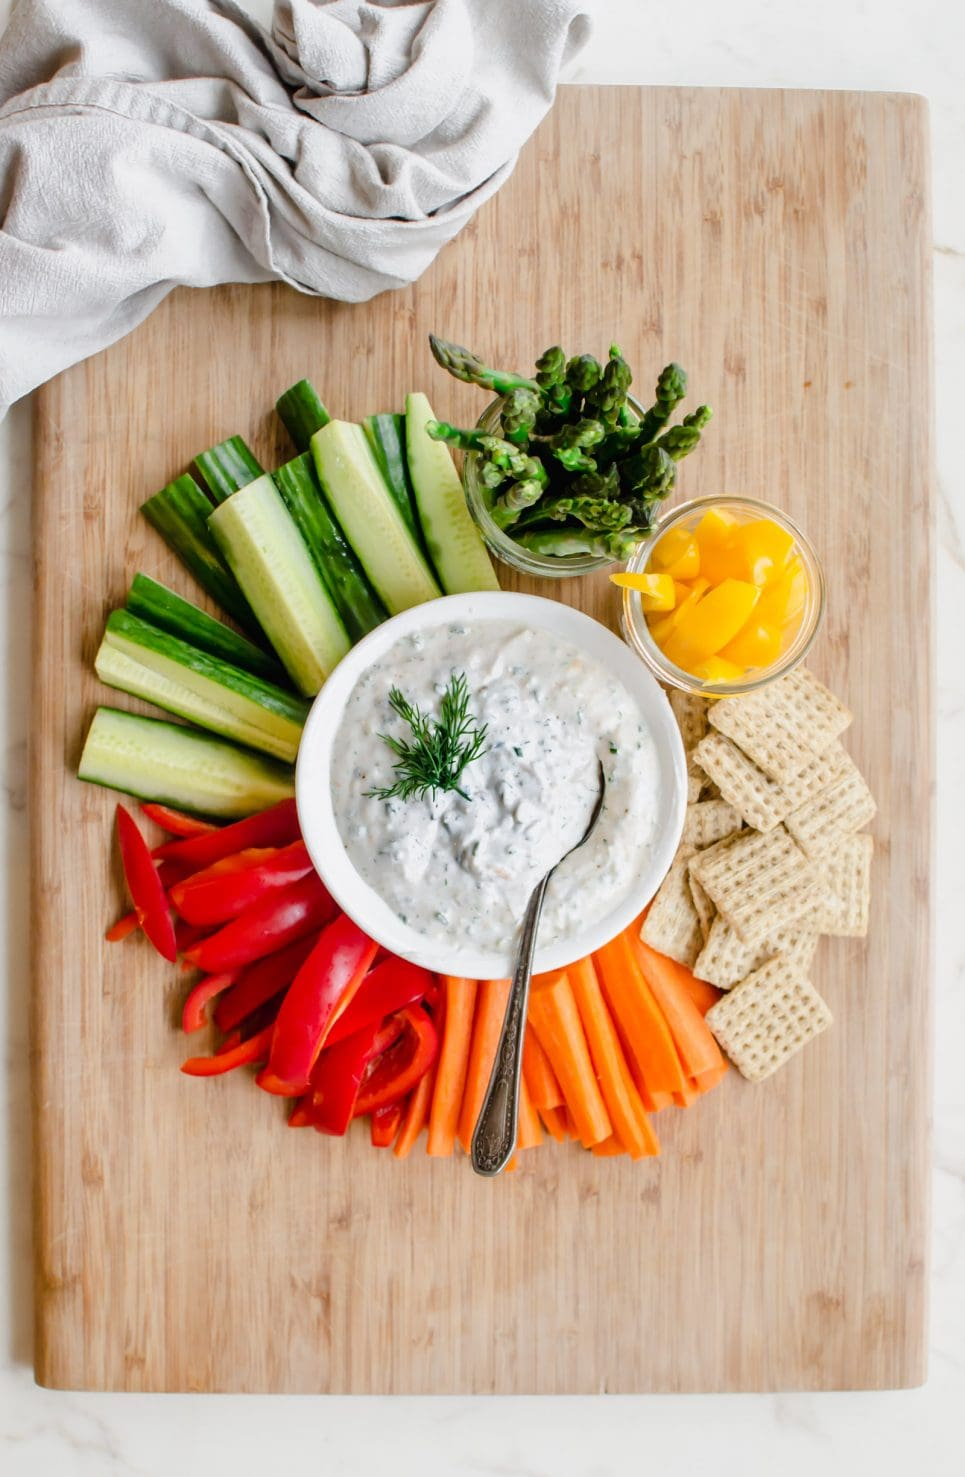 A cutting board with colorful veggies surrounding a white bowl with creamy Parmesan herb dip.